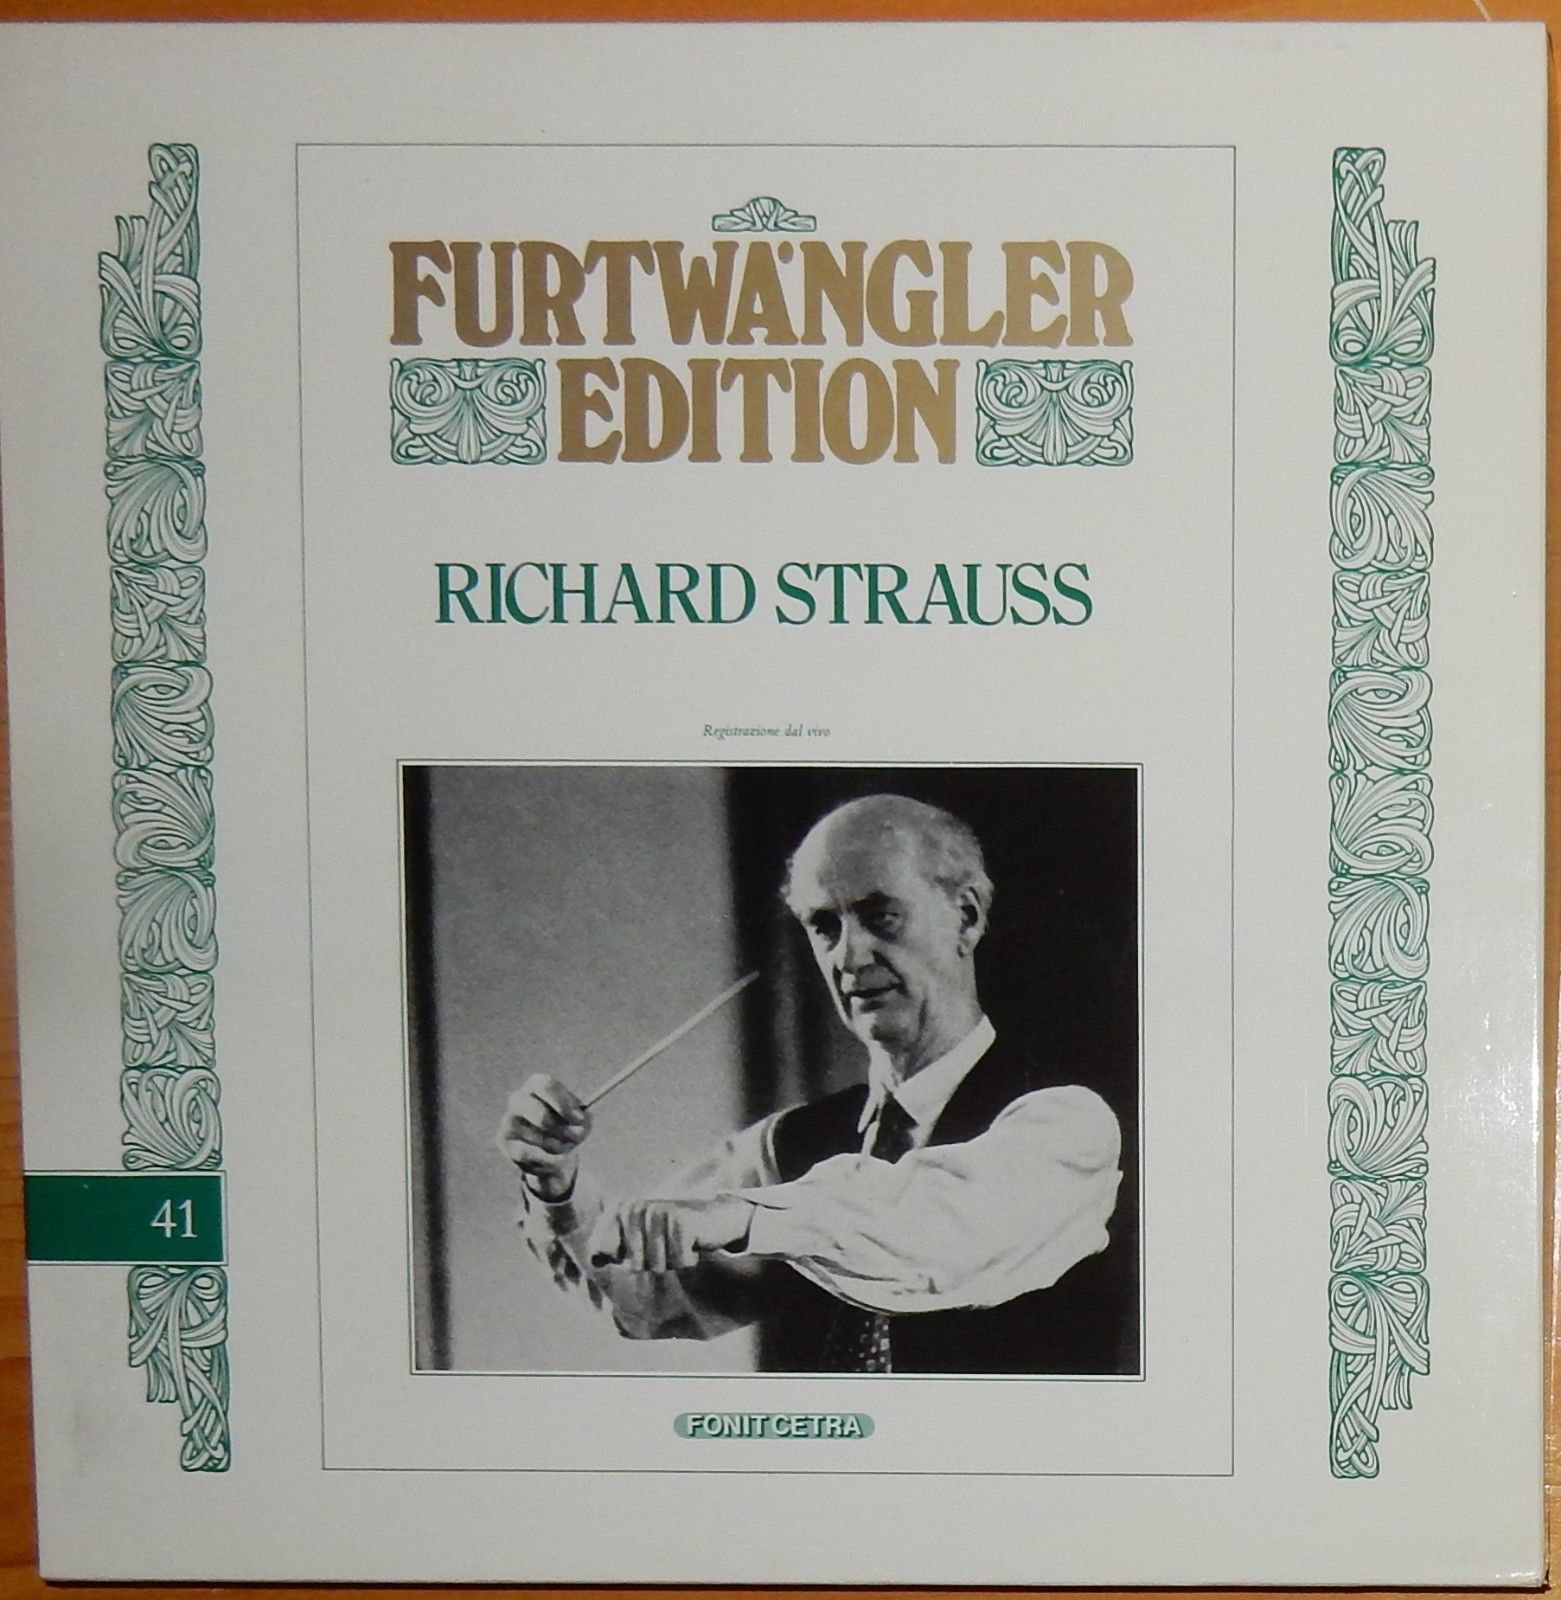 RICHARD STRAUSS; FURTWANGLER EDITION #41; FONITCETRA ITALY 3 LPS NM-M